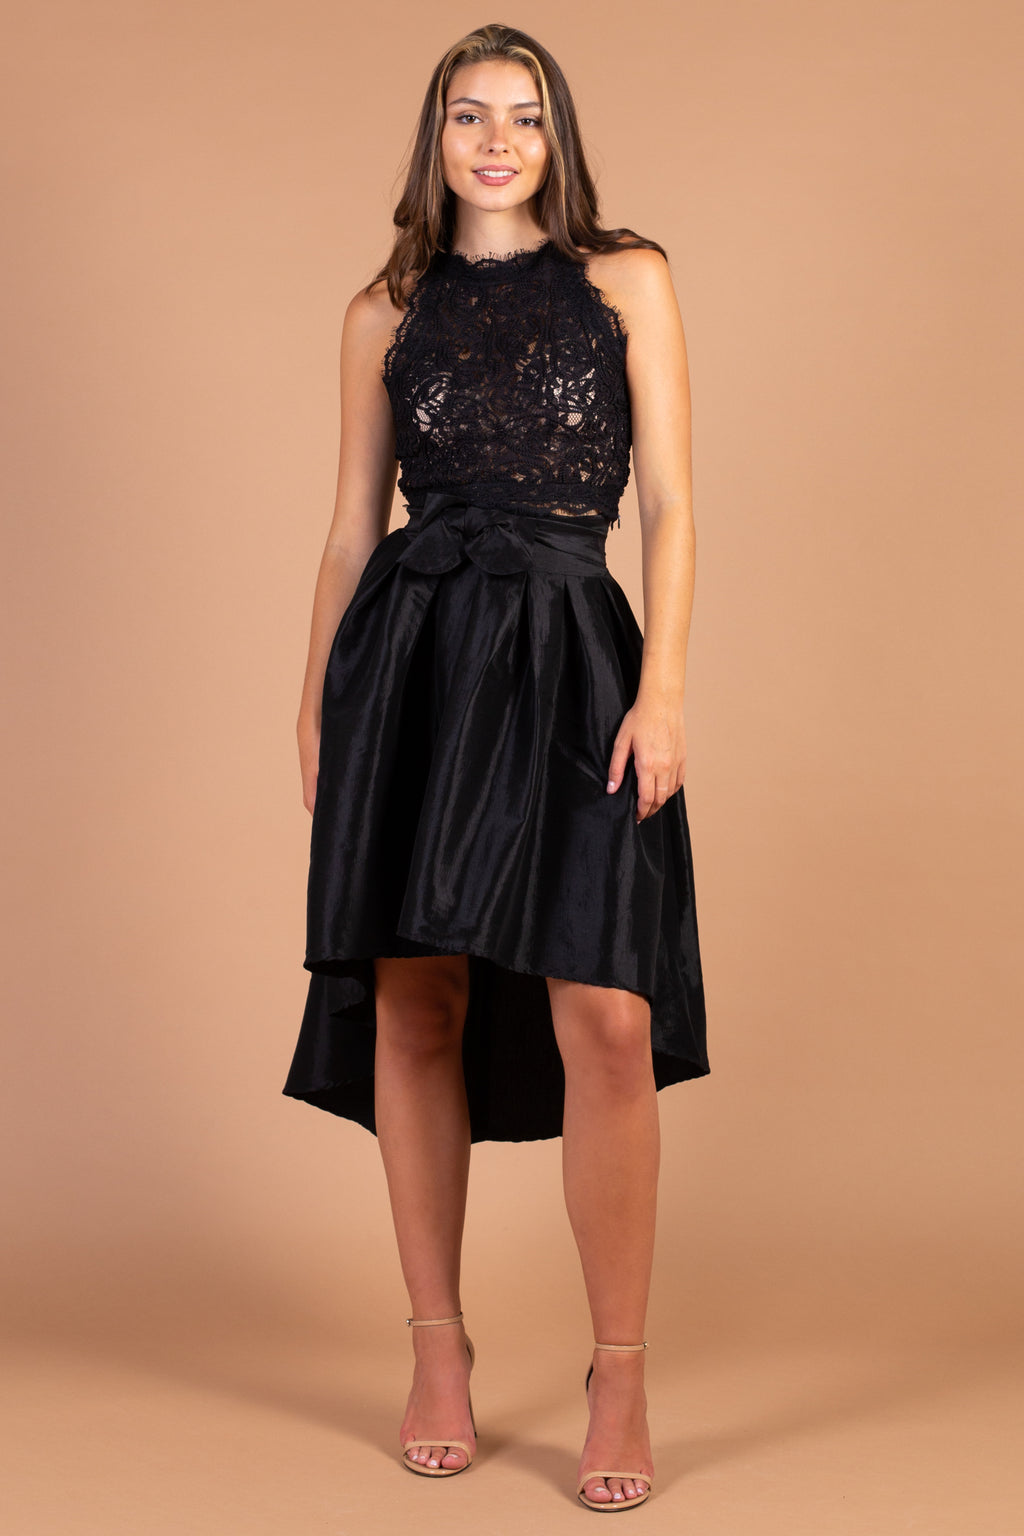 Dance With Me Taffeta Midi Skirt - honey